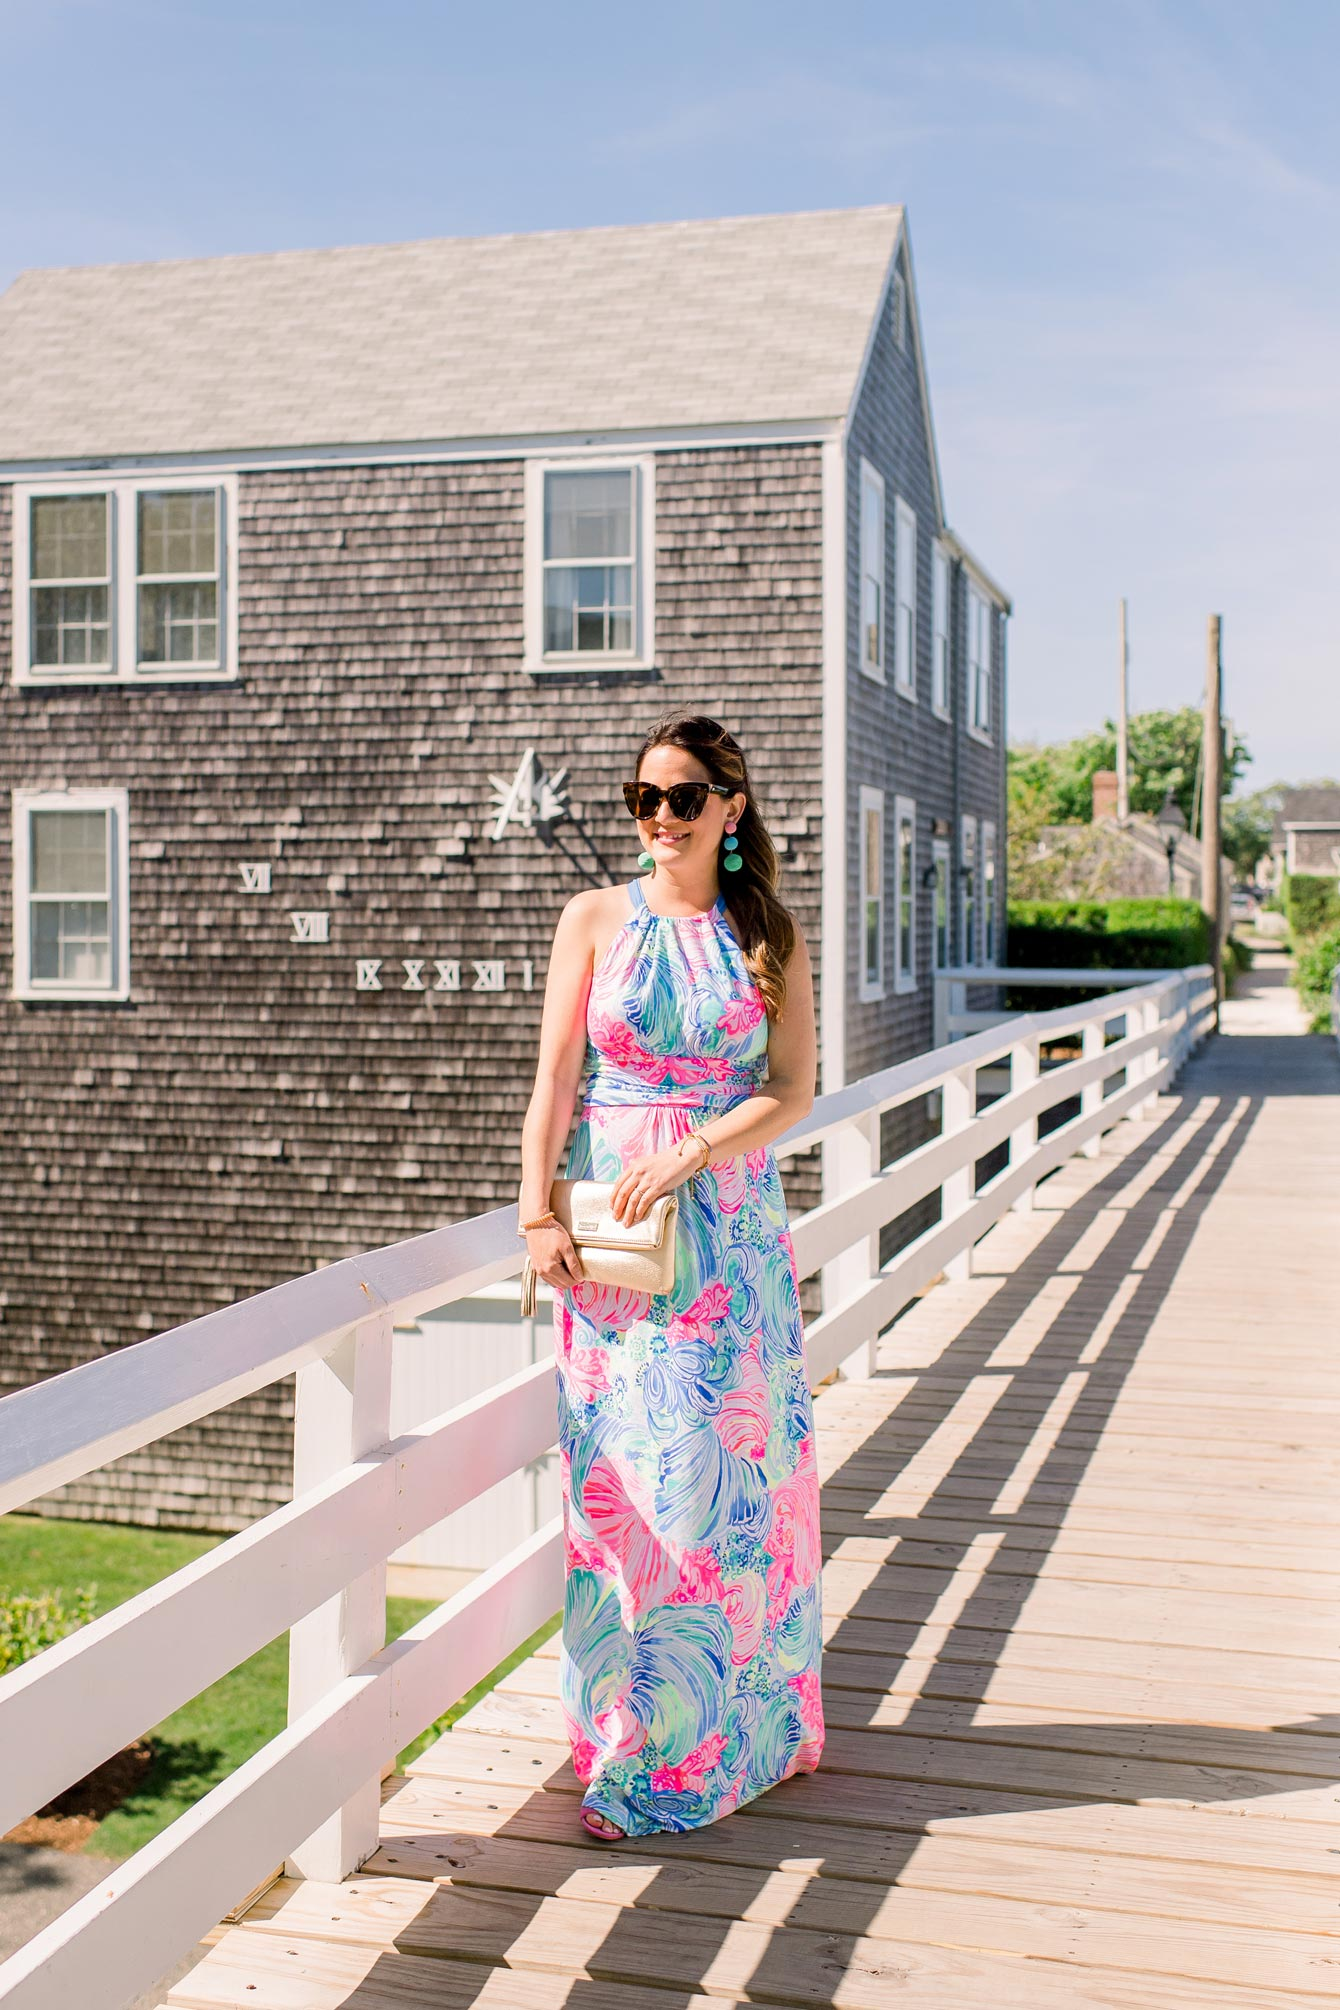 Jennifer Lake Lilly Pulitzer After Party Sale Outfits